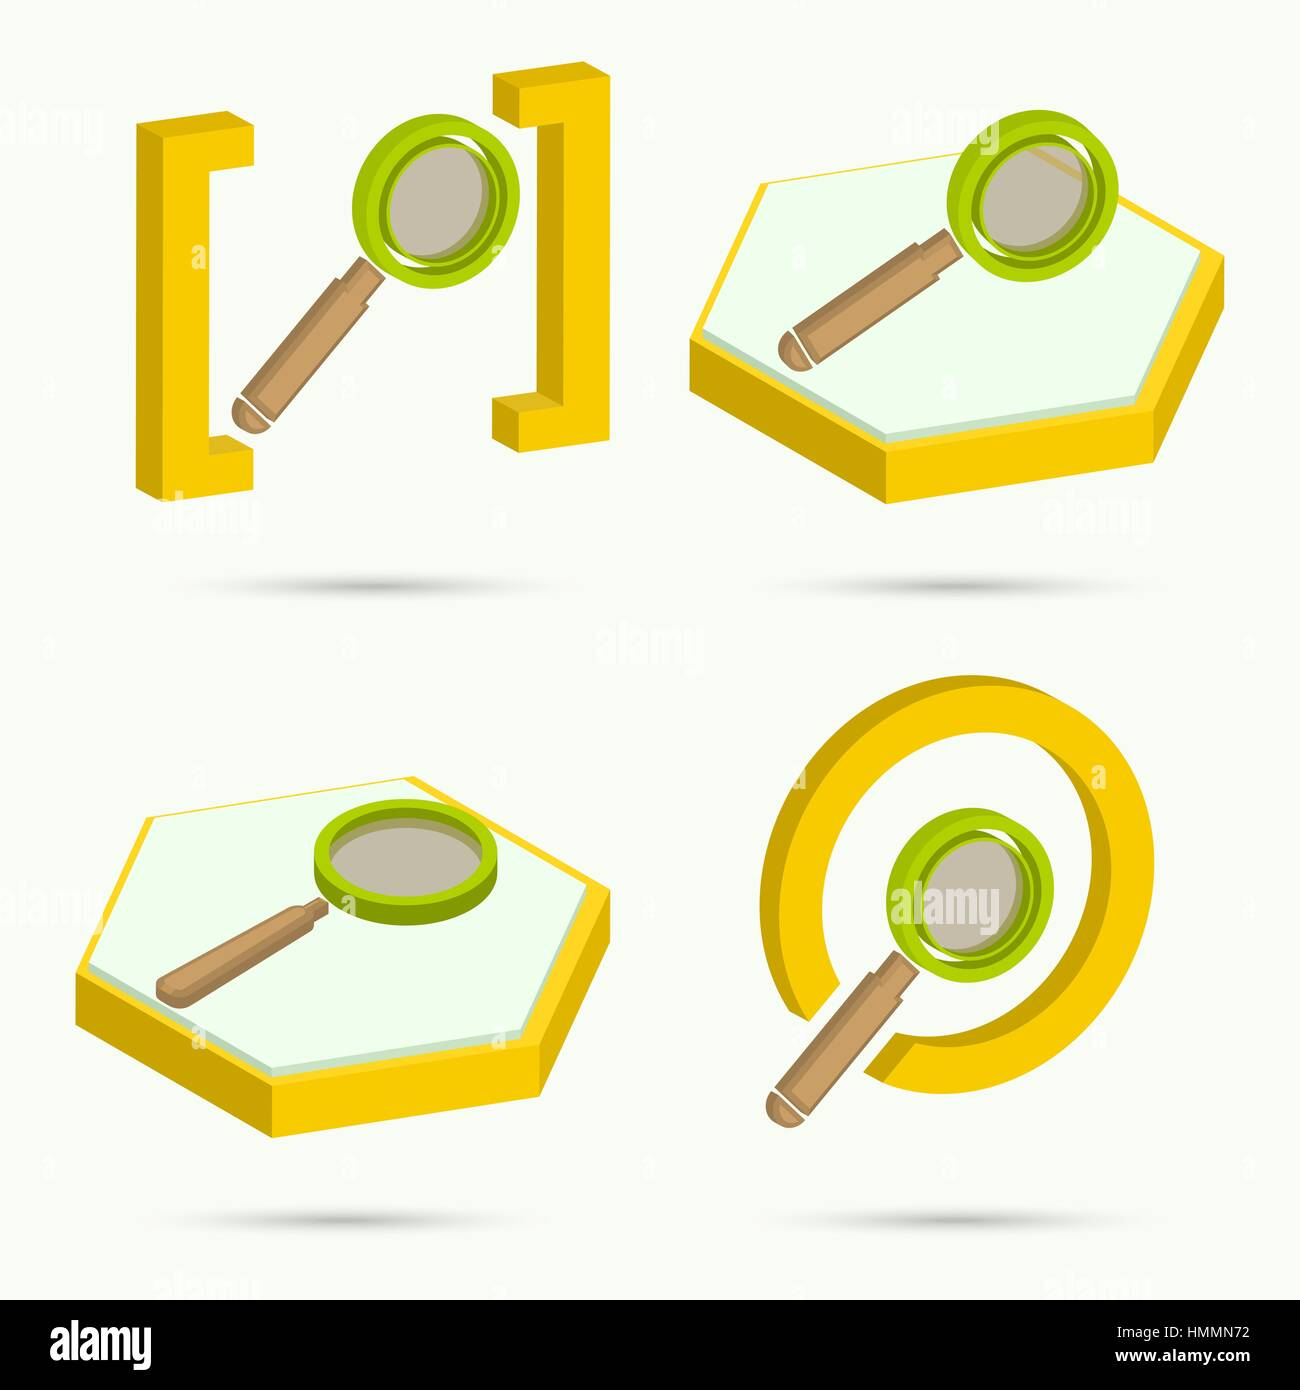 Isometric icons. Collection of four icons search. Vector illustration - Stock Vector